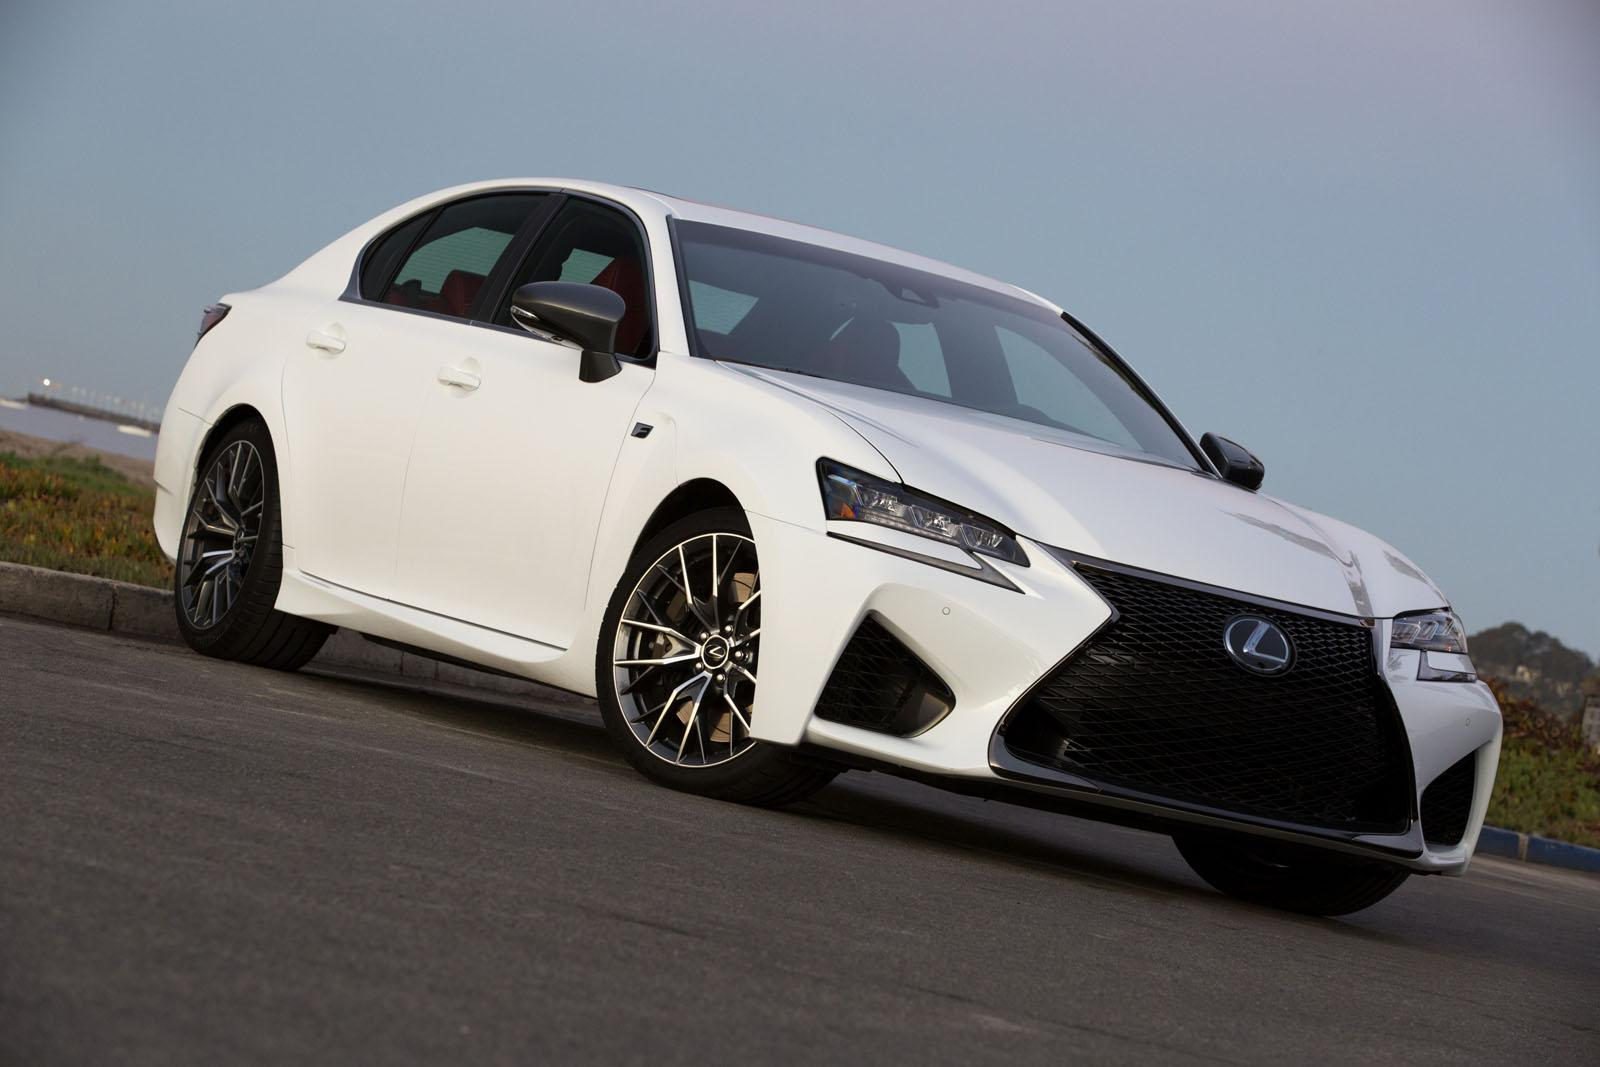 2016 lexus gs f pricing announced almost 10 000 cheaper than a bmw m5 autoevolution. Black Bedroom Furniture Sets. Home Design Ideas